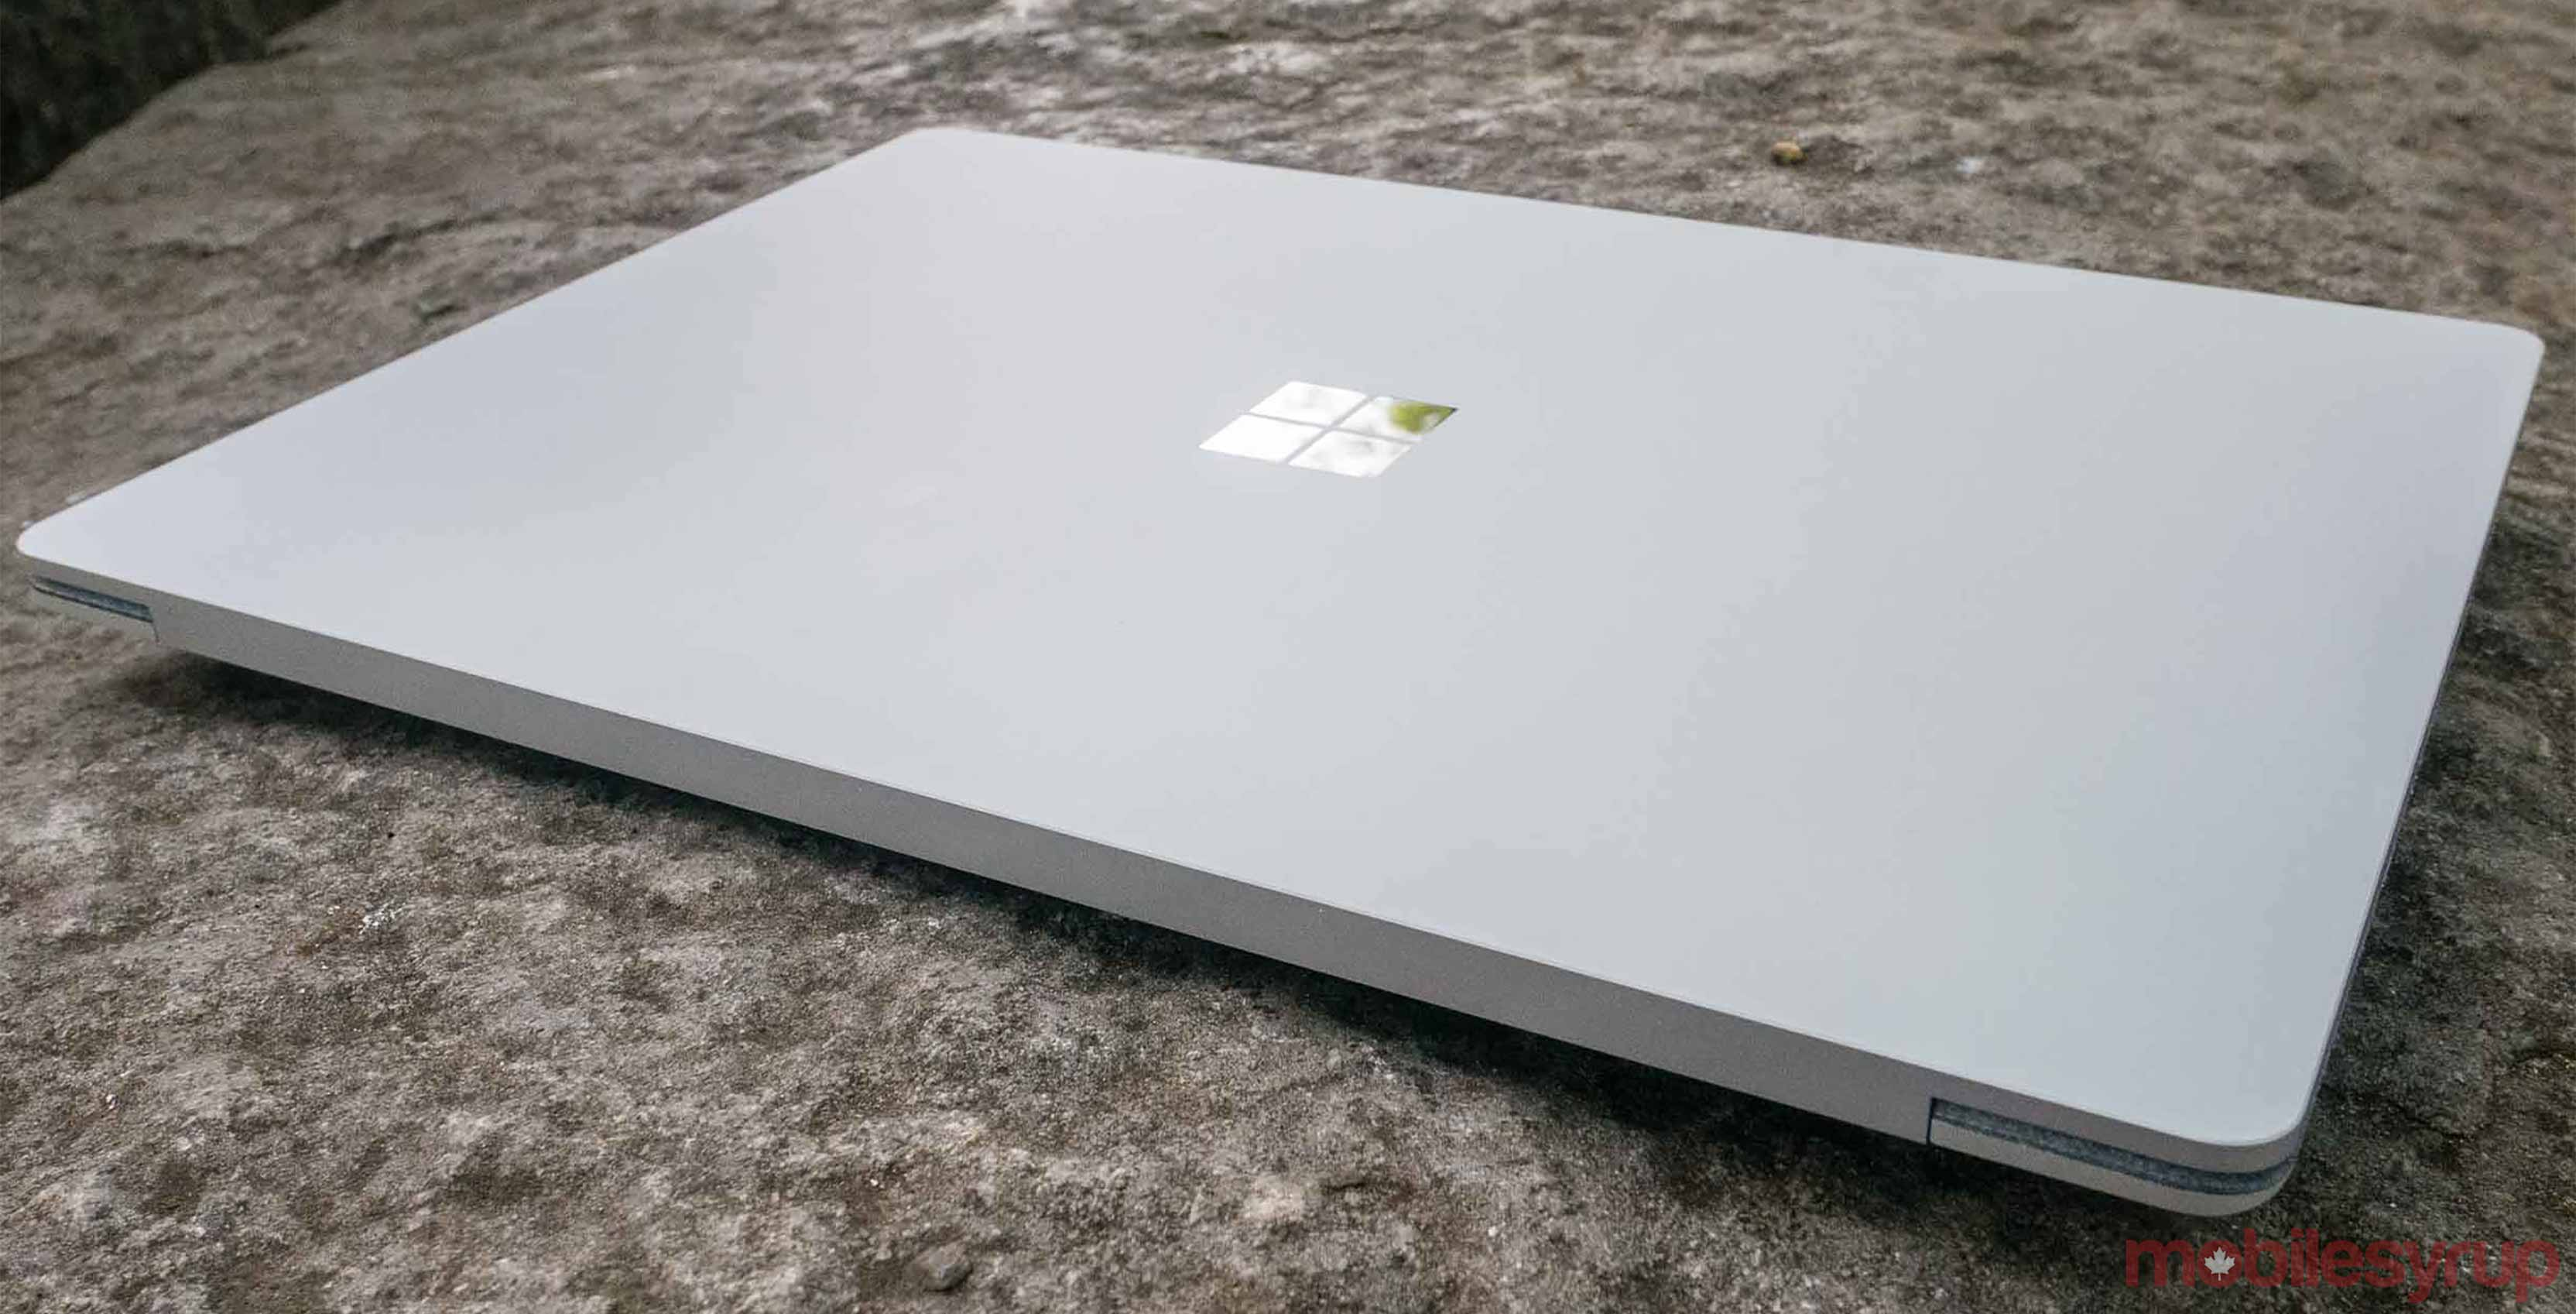 Surface Laptop on a table